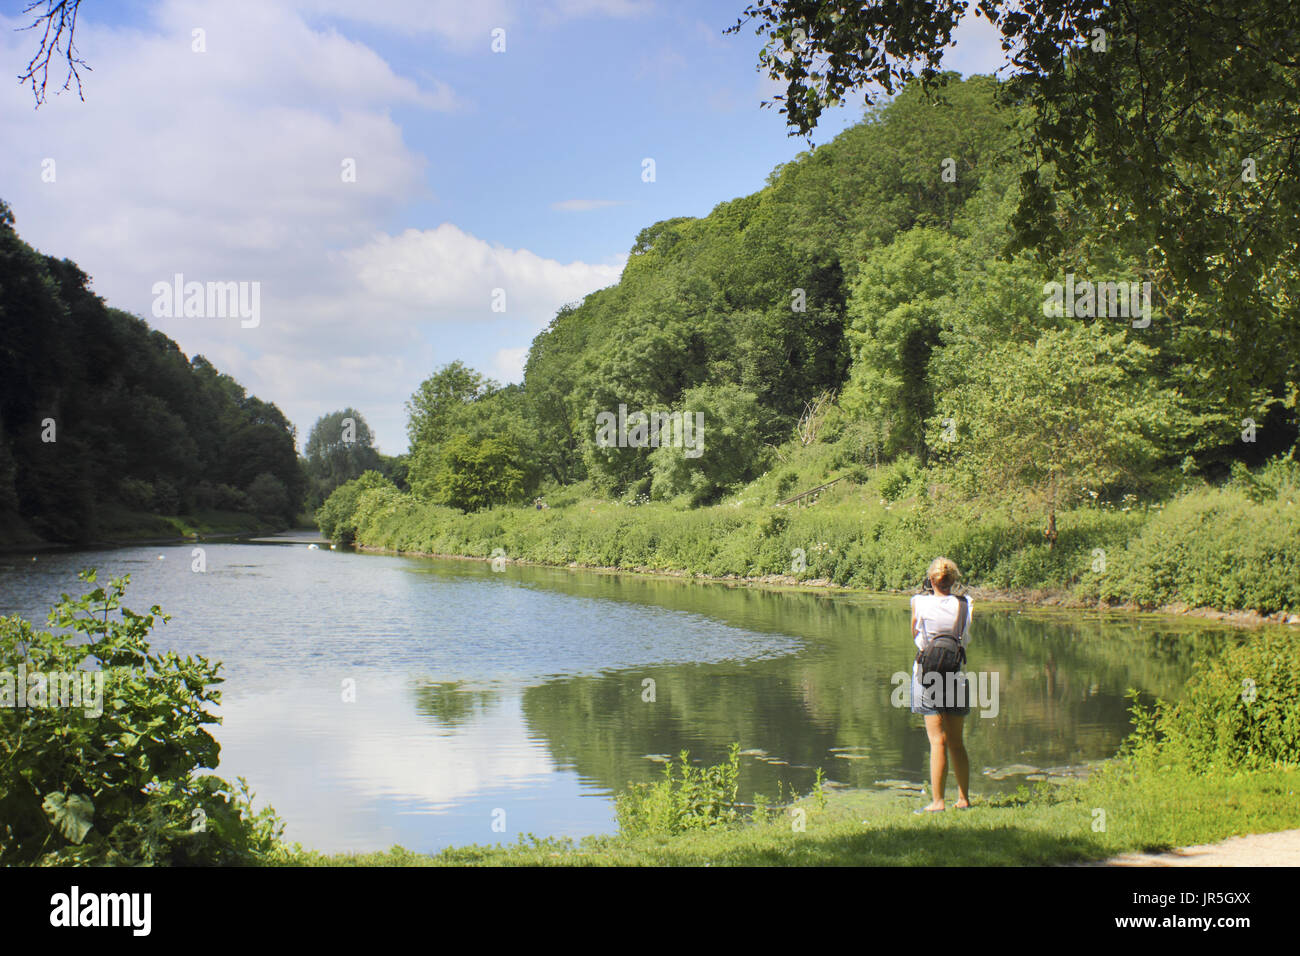 Creswell Crags, a limestone gorge honeycombed with caves of archaeological importance on the border of Derbyshire and Nottinghamshire, England,UK, - Stock Image